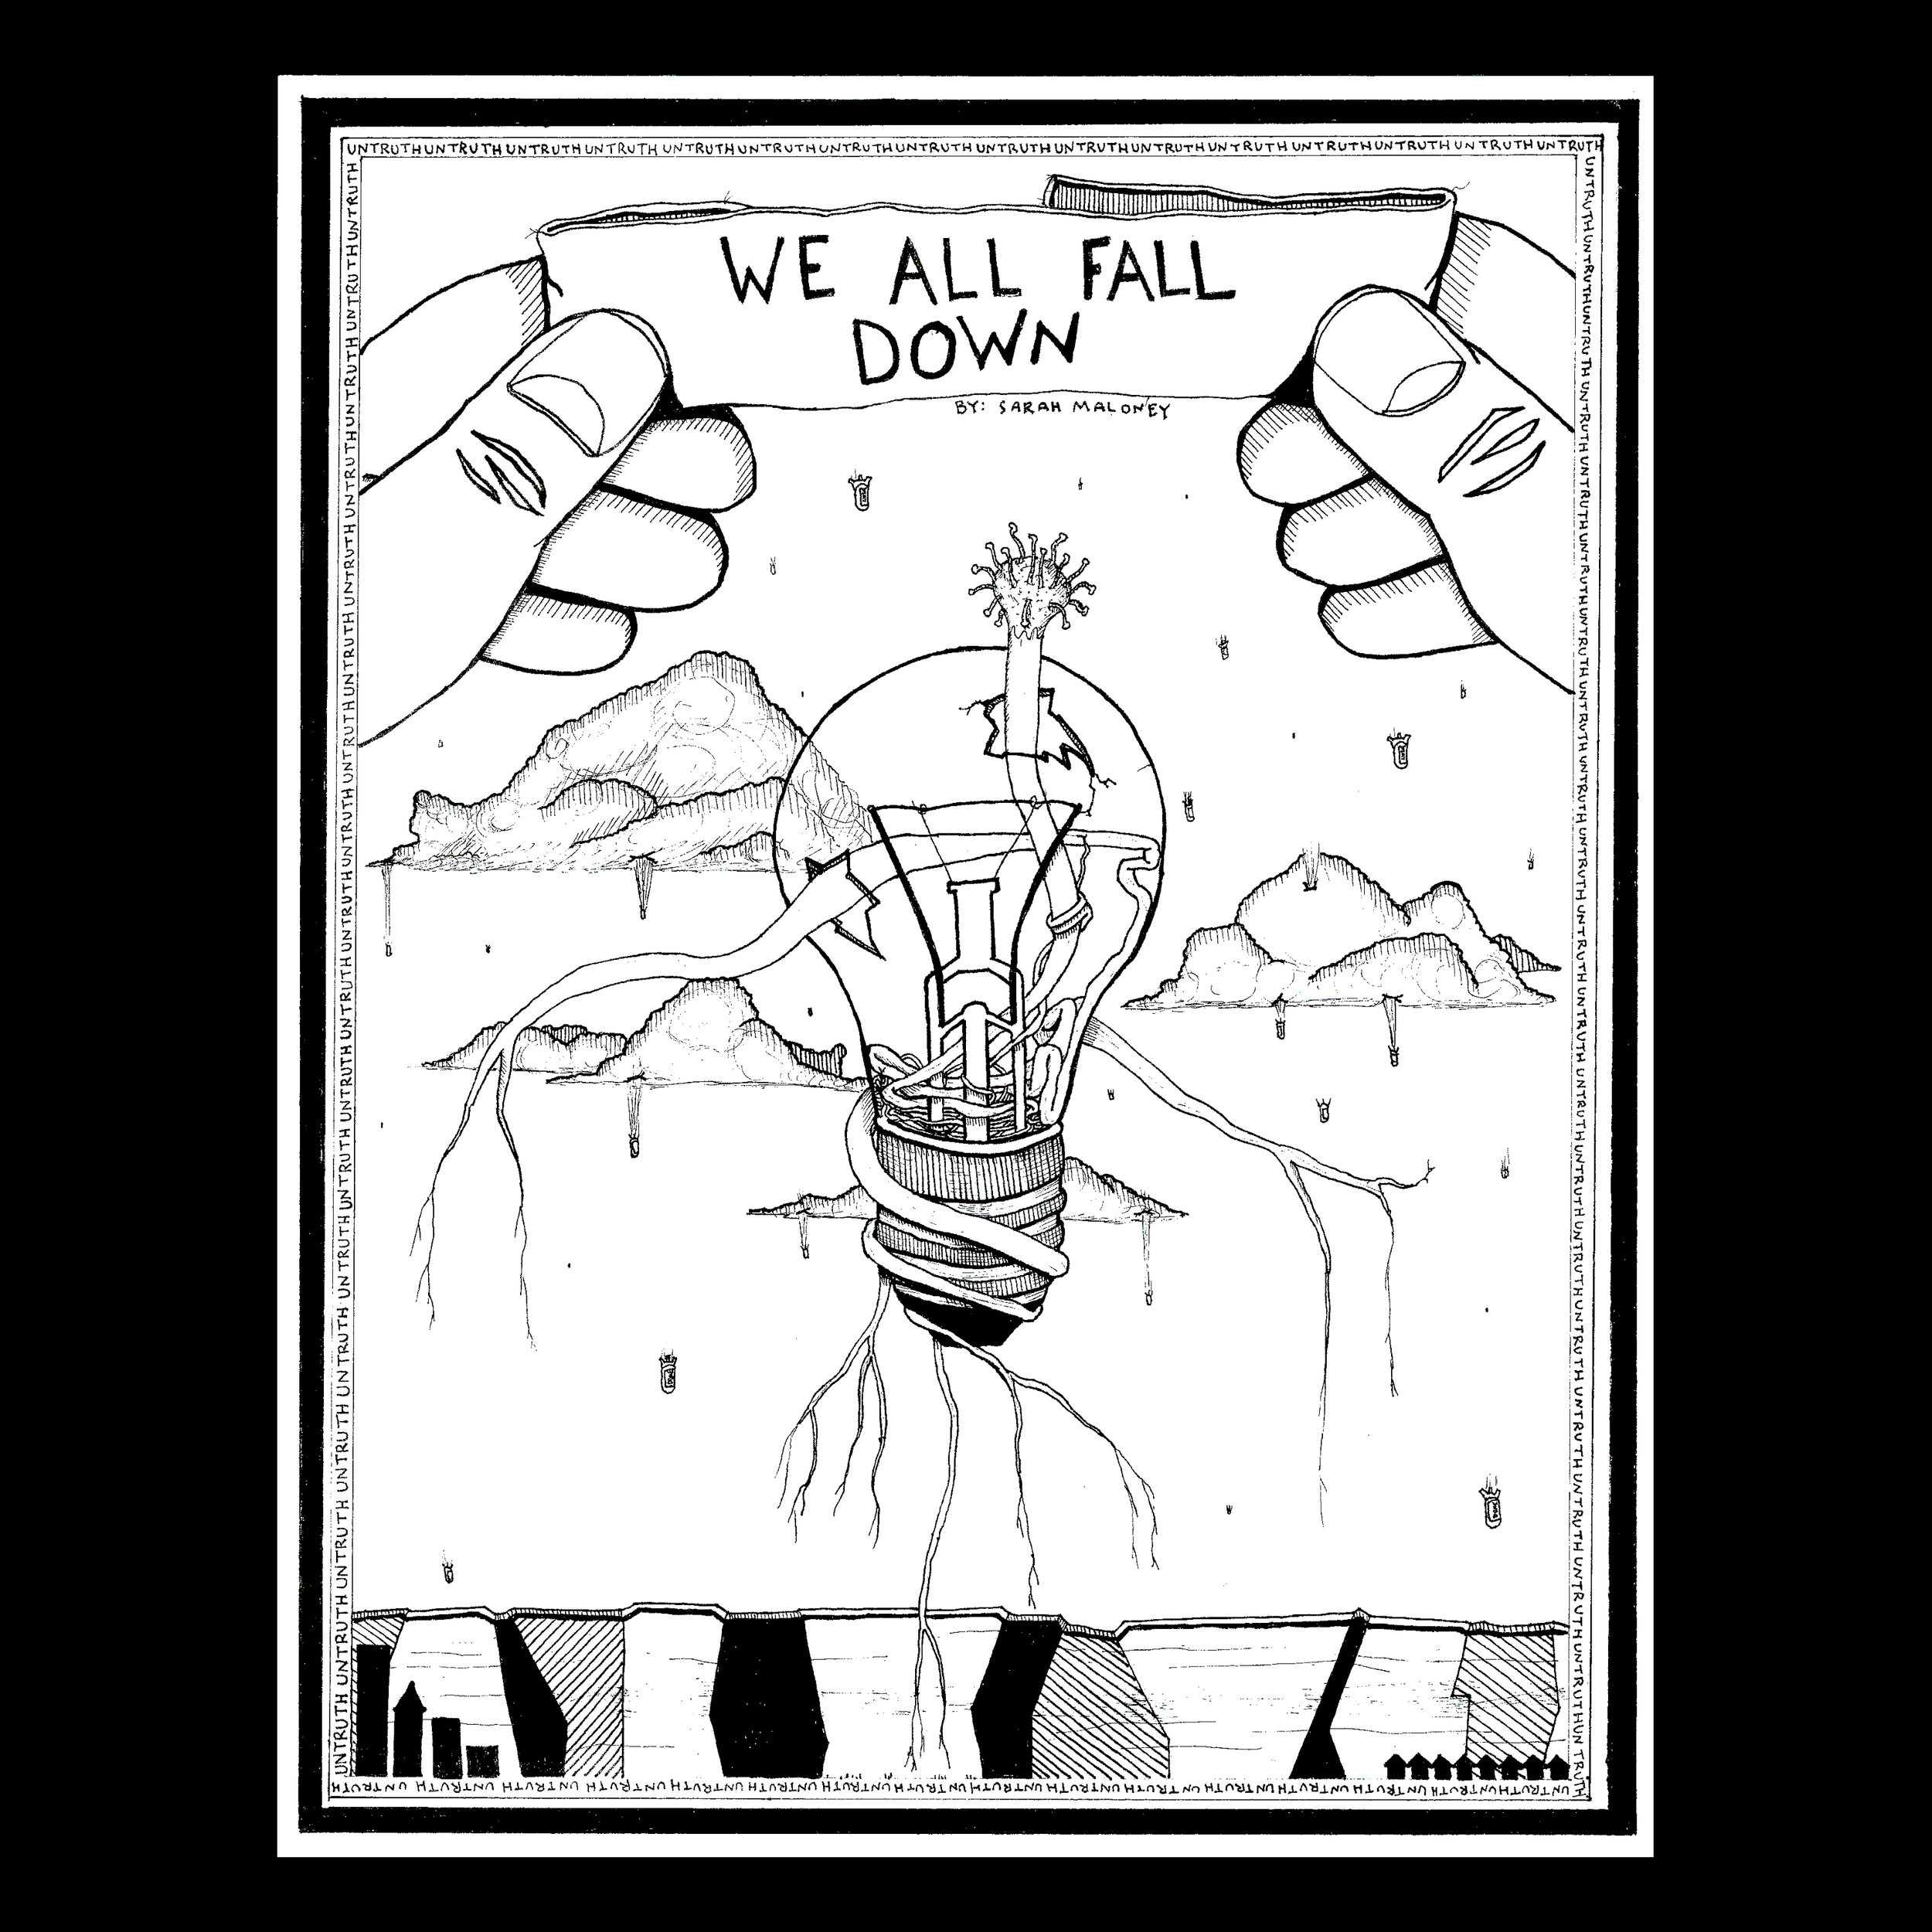 We All Fall Down - After falling into the drawn world, Rosalind wants to find her way back home. However, this world is constructed on untruth and absurdities, making her journey back home....complicated. A mad botanist becomes her guide, but is utterly unhelpful in his helpfulness. As the duo try to get her home they learn that absurdity depends on your persective and truth is harder to find than lies